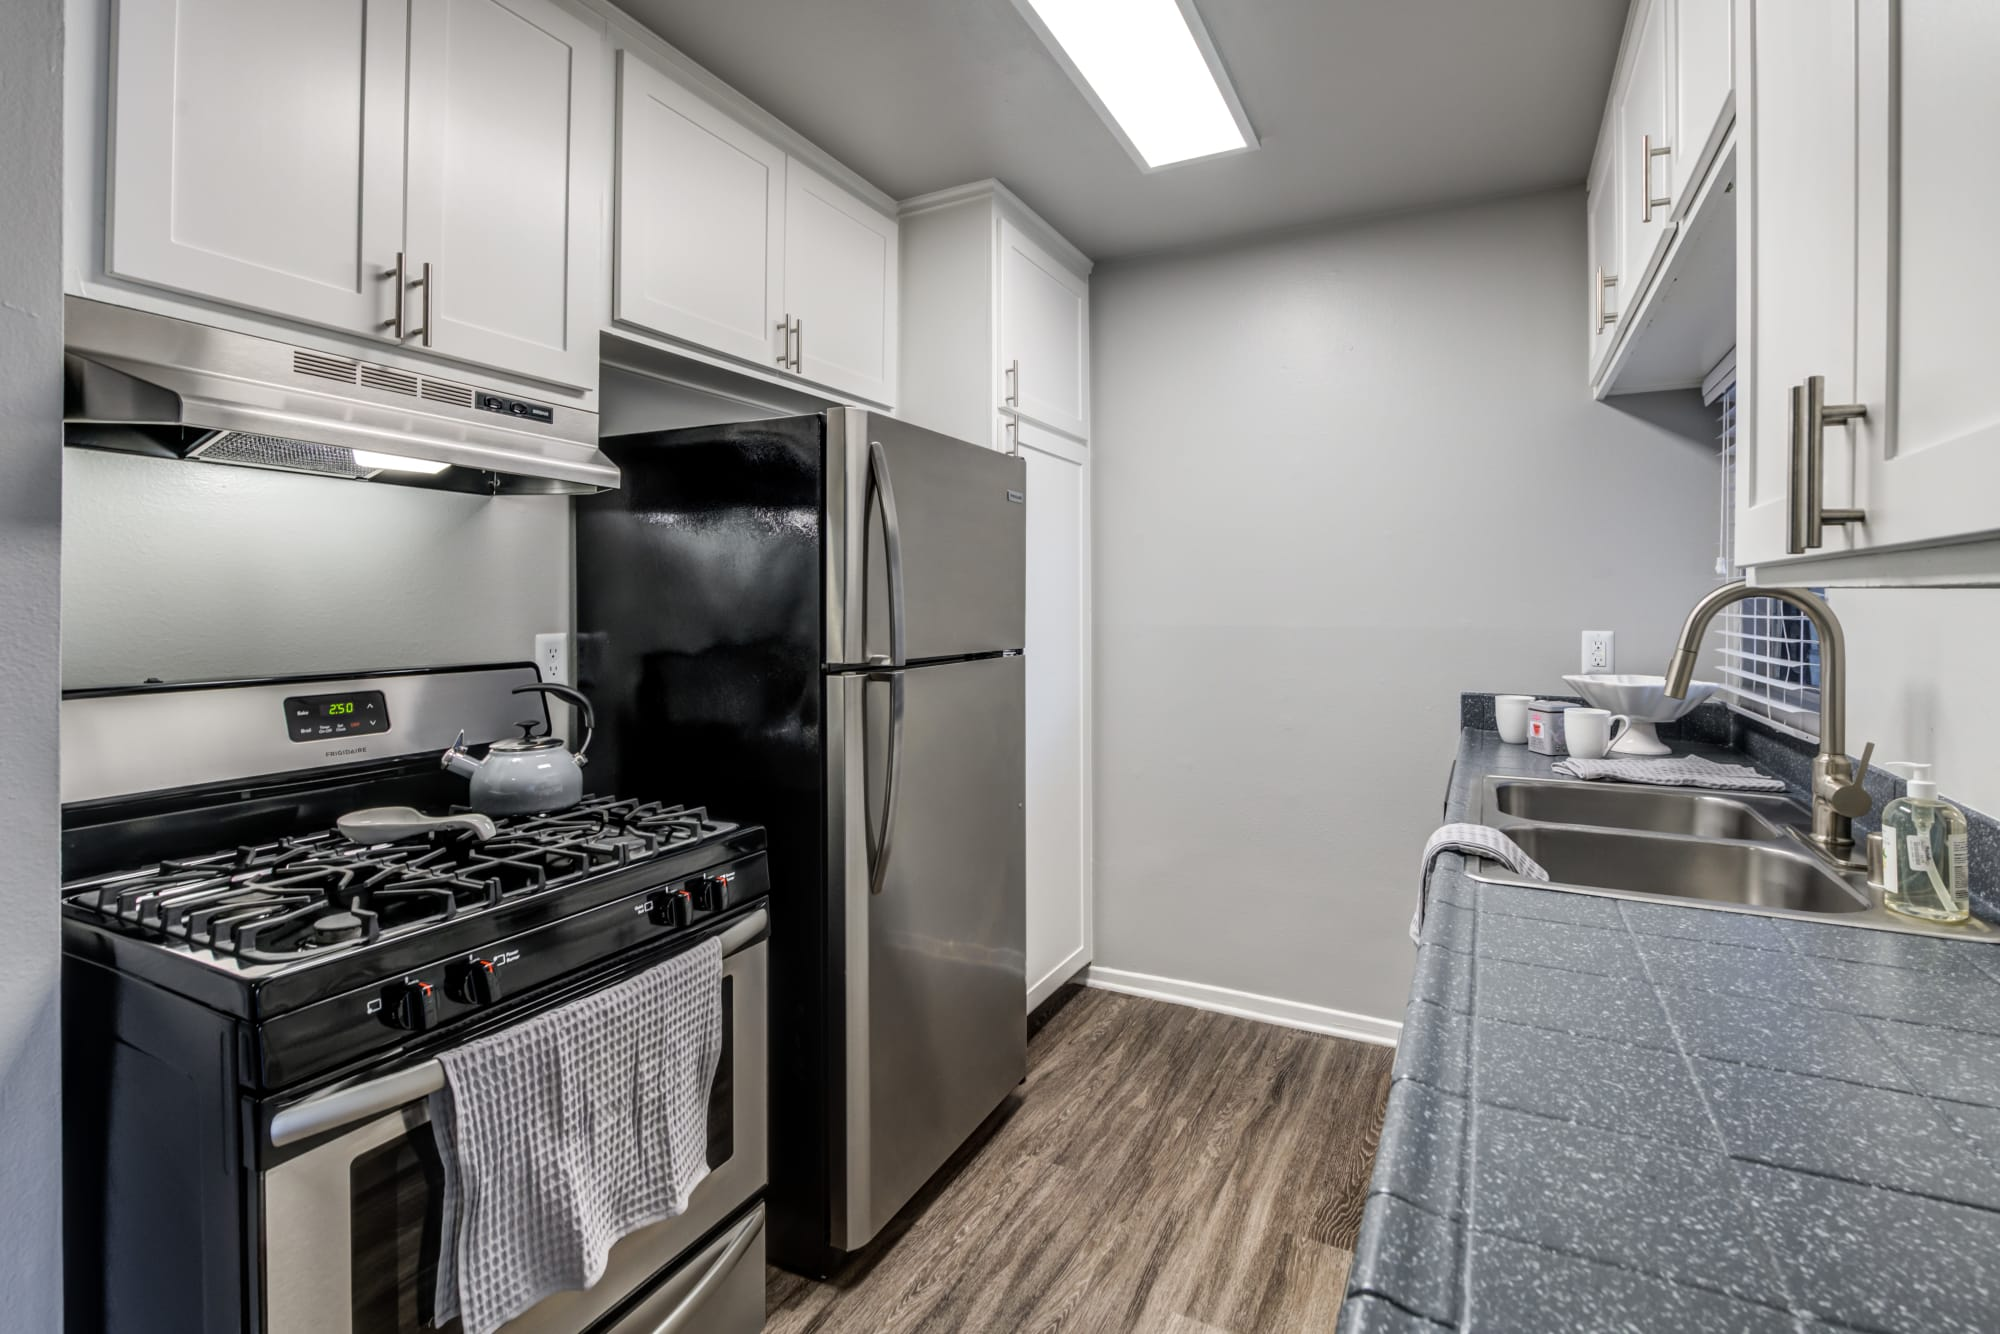 Renovated kitchen with white cabinets and stainless steel appliances at Kendallwood Apartments in Whittier, California